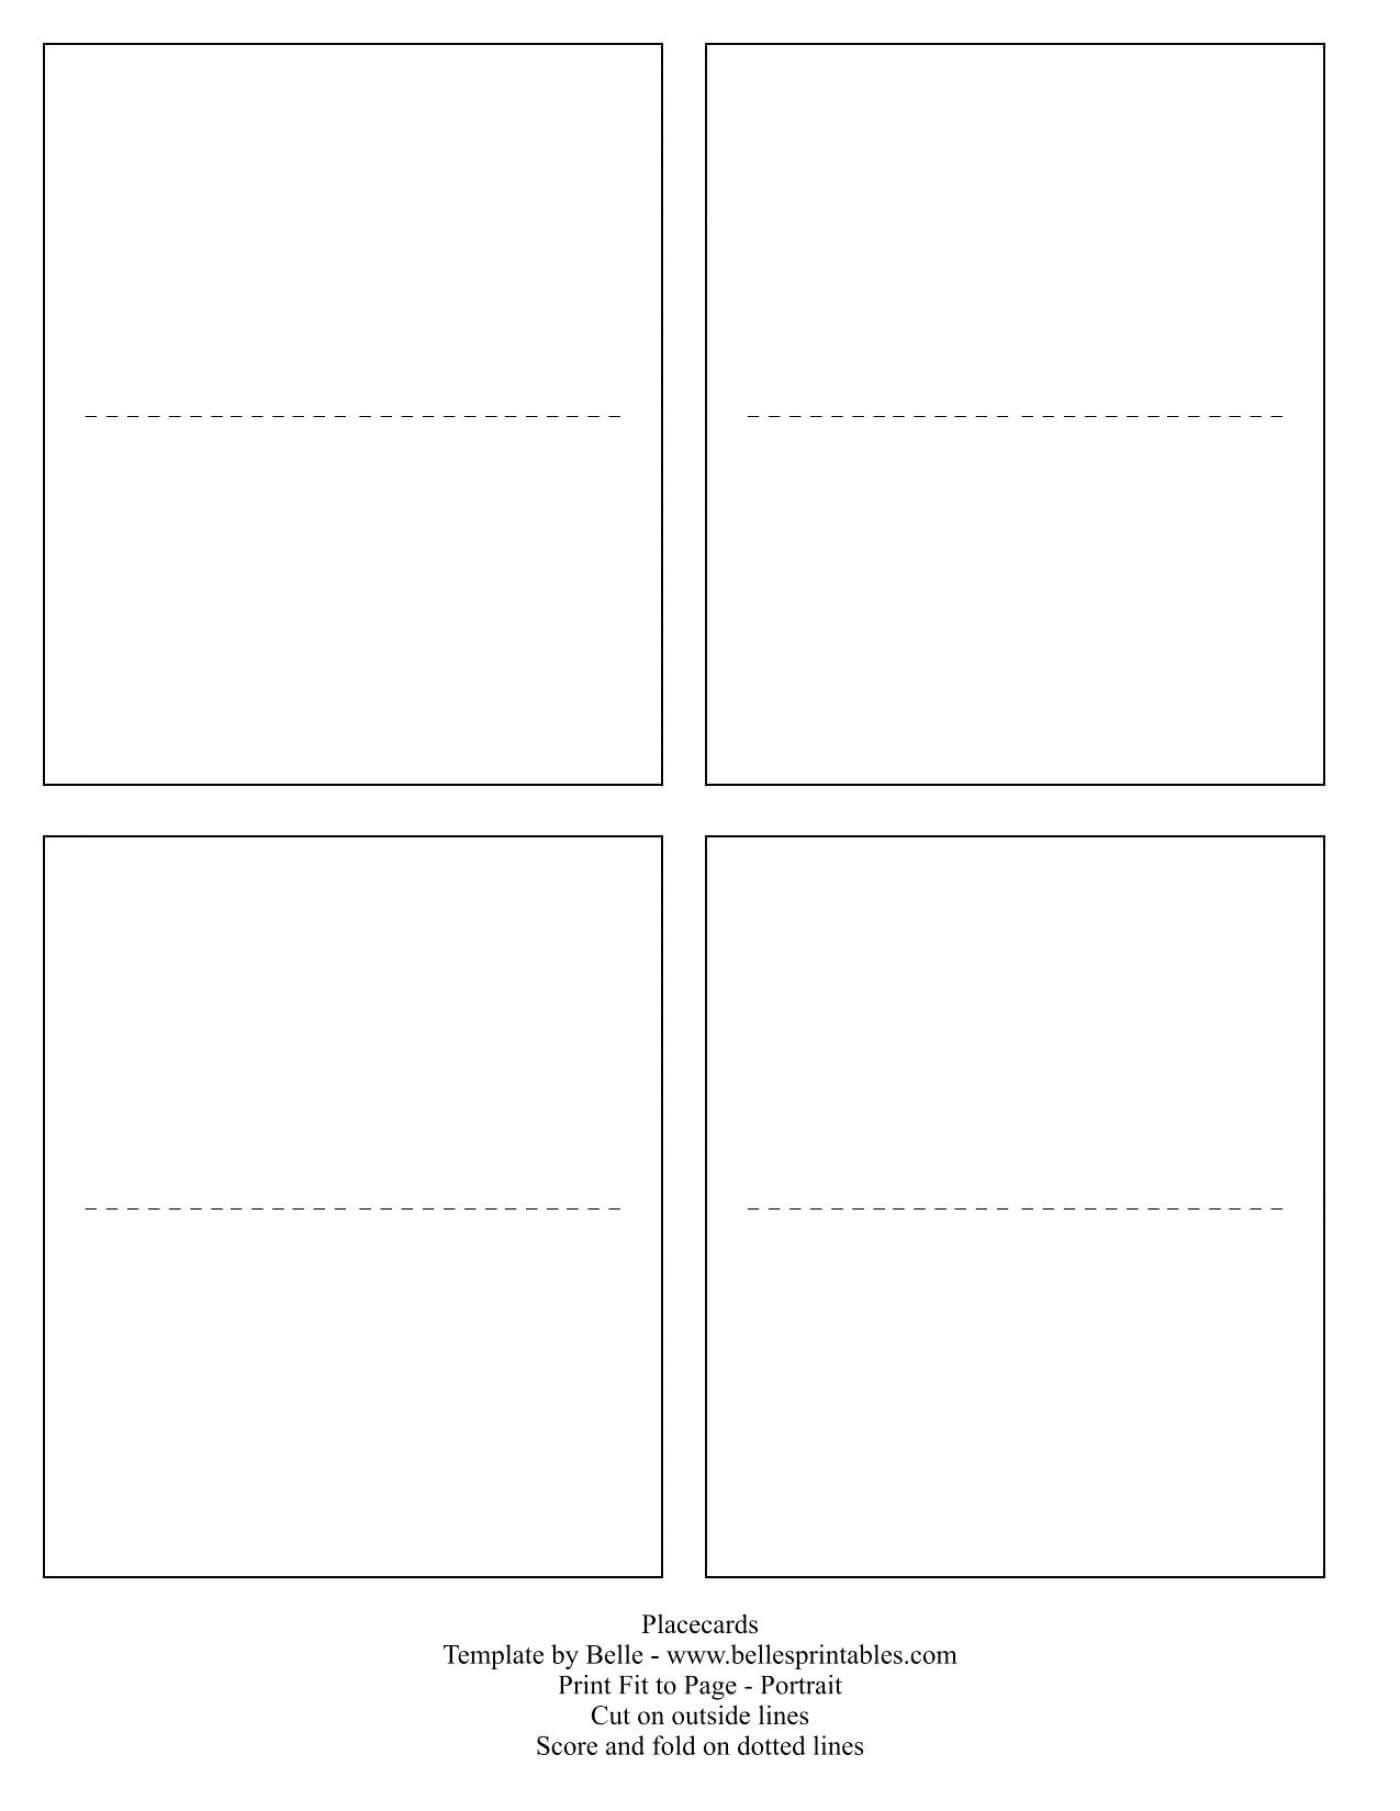 017 Template Ideas Place Card Word Lien Release Form Az Regarding Imprintable Place Cards Template